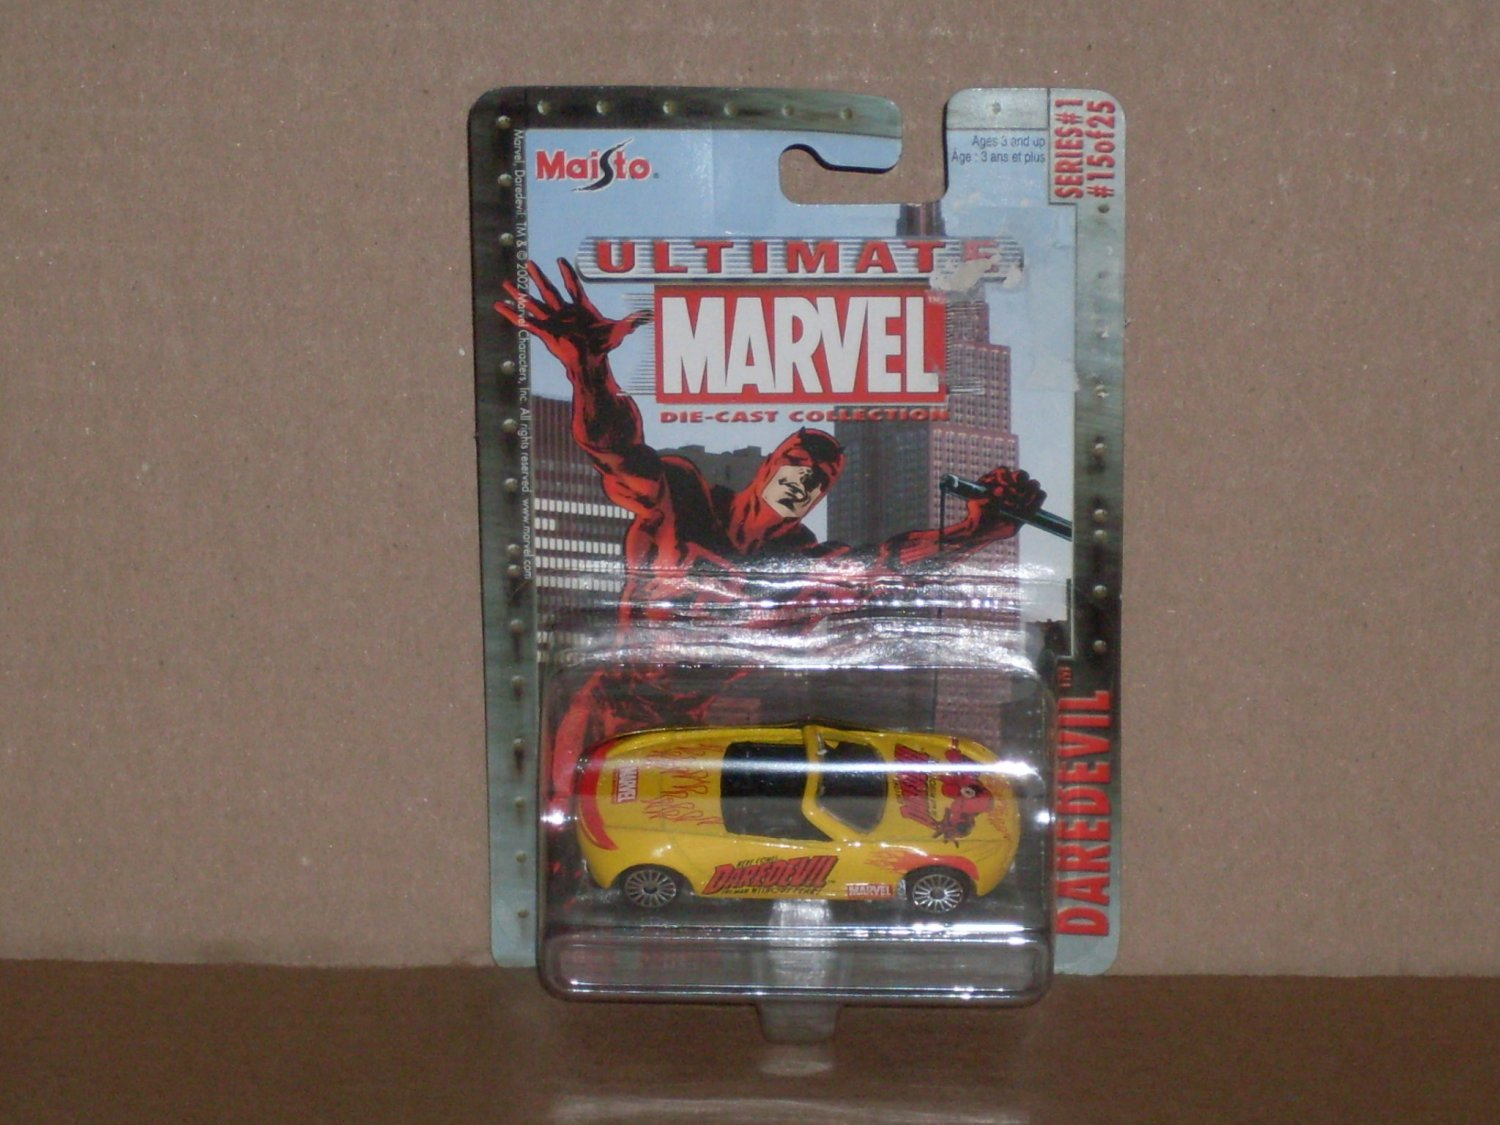 Maisto Daredevil Ultimate Marvel Die Cast Collection (2002)